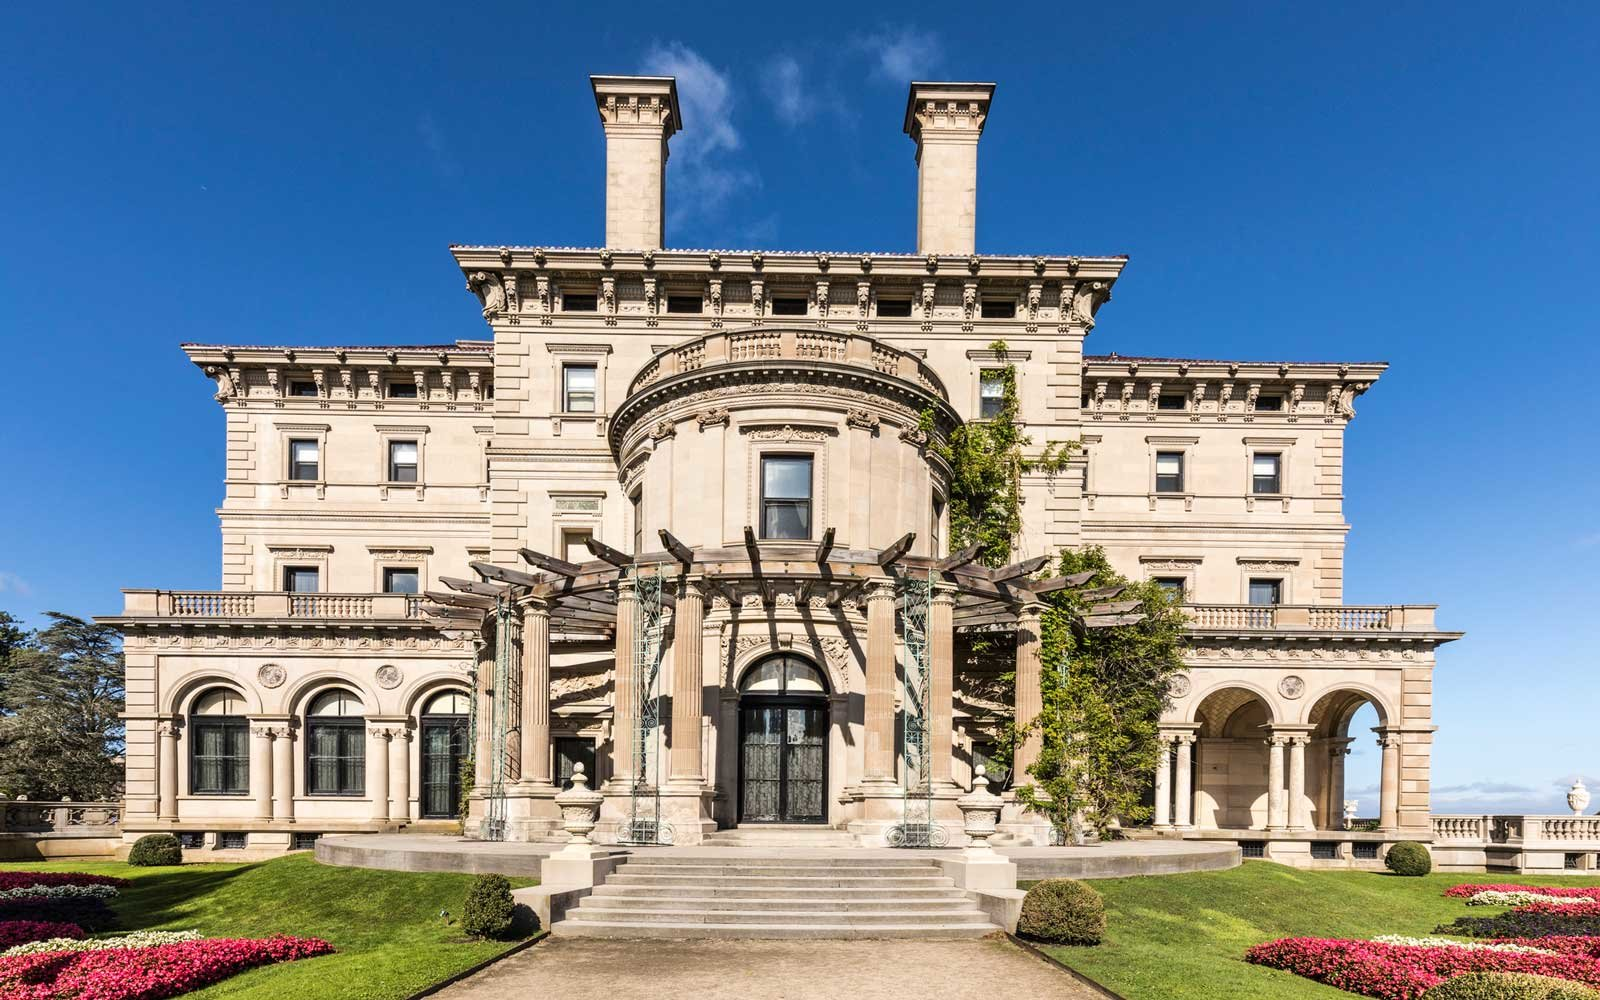 the breakers is an old Newport Mansion open to public